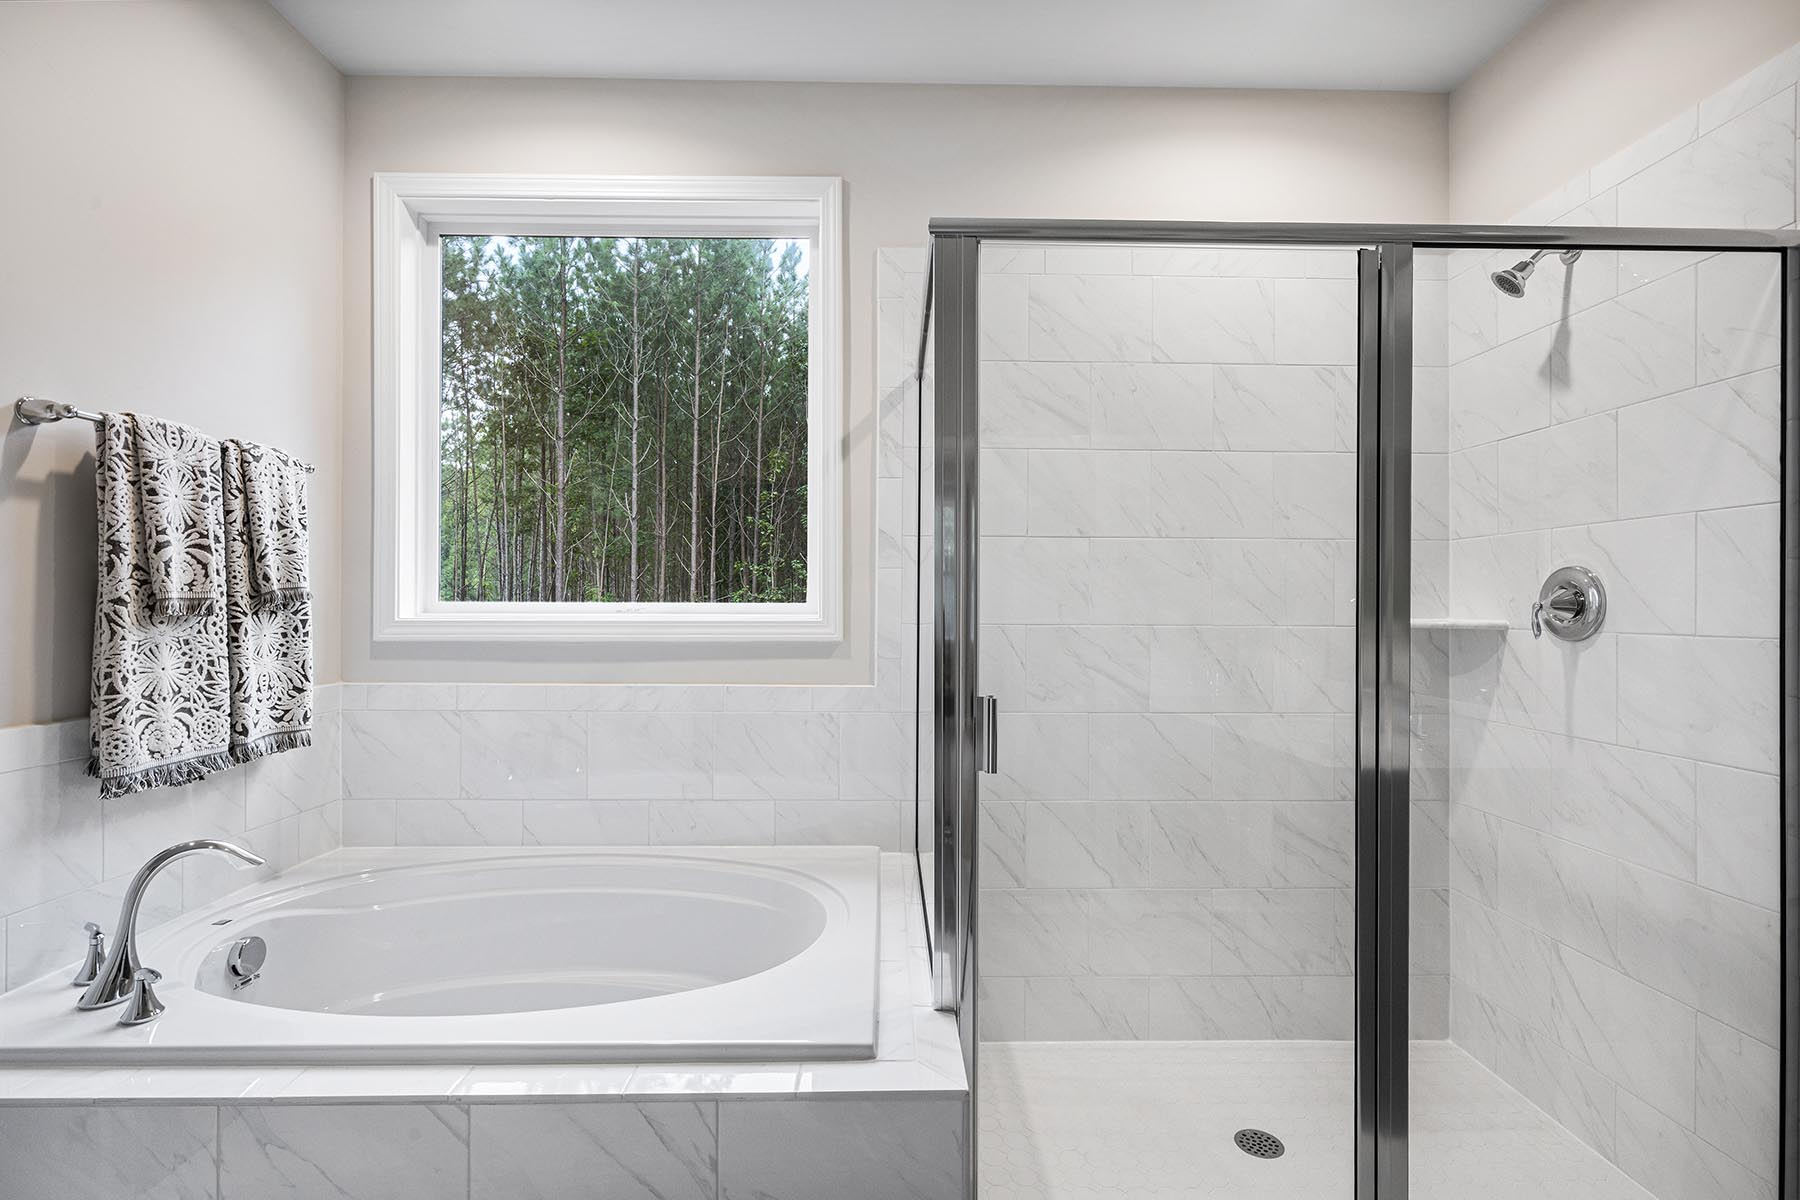 Kendrick Plan Bath at Fairview Park in Cary North Carolina by Mattamy Homes